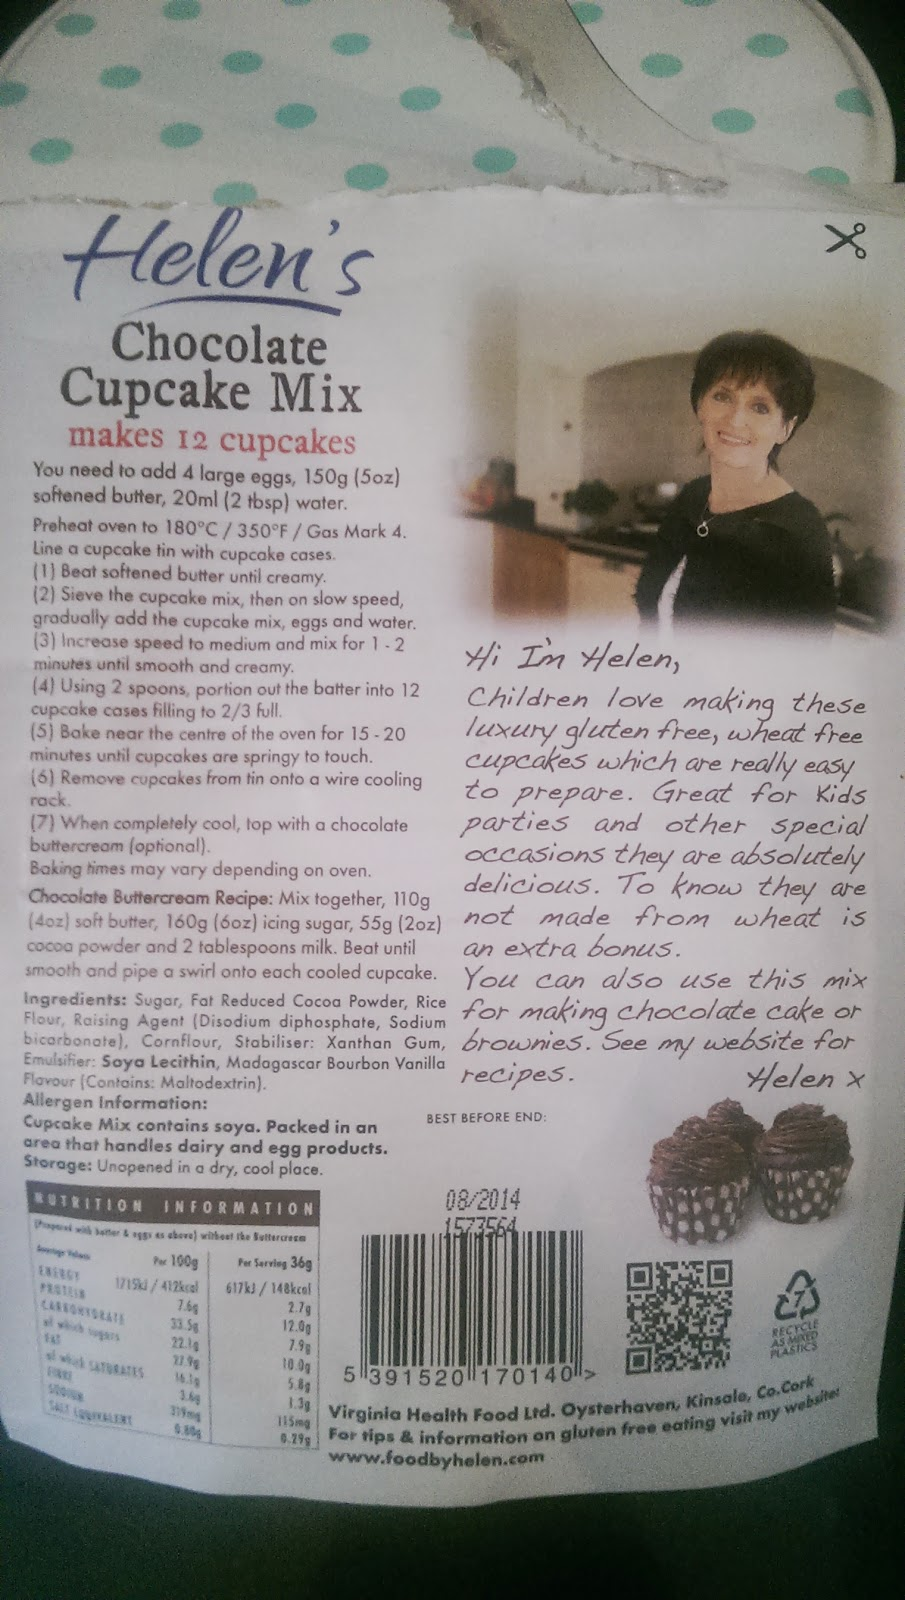 Helen's Chocolate Cupcake Mix Gluten and Wheat Free.